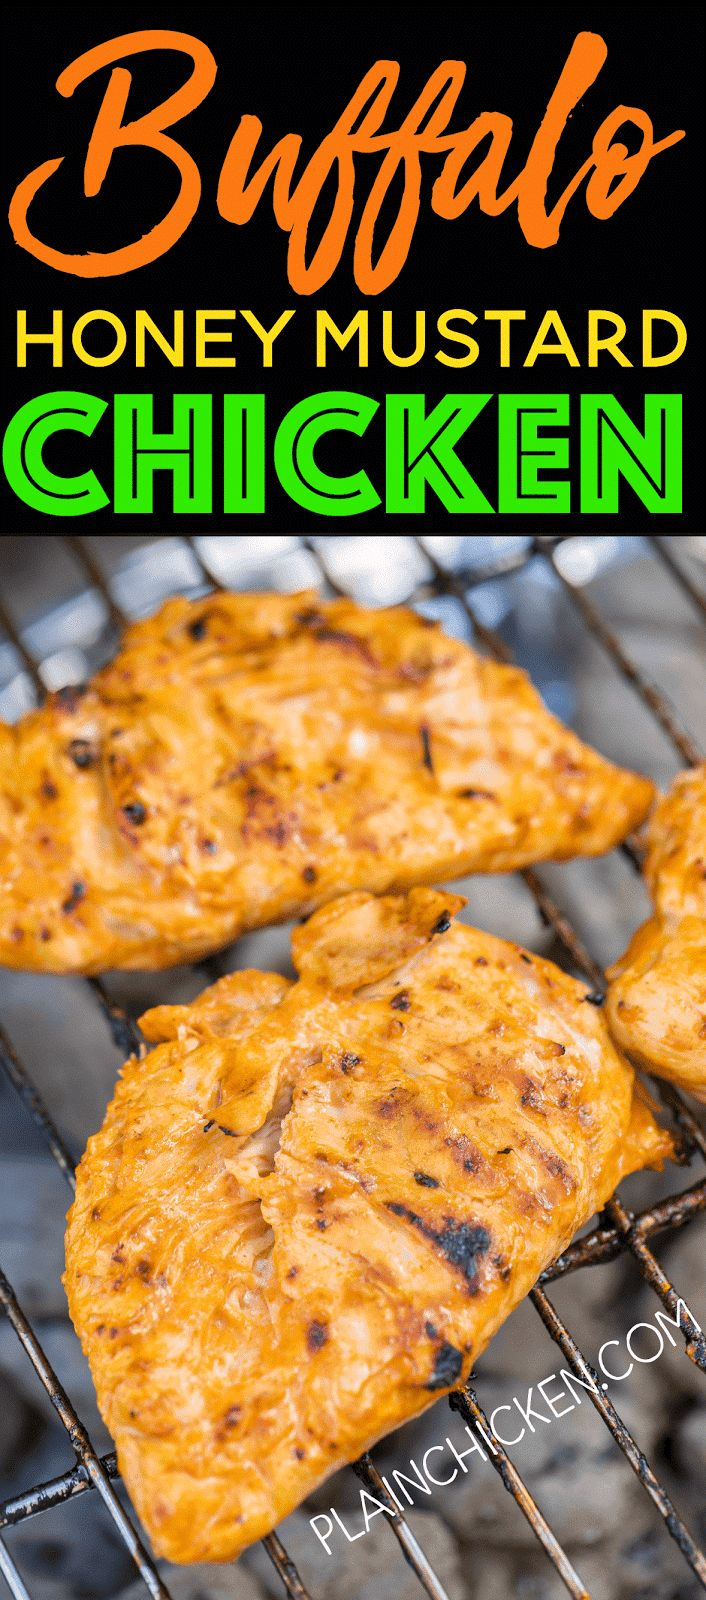 Buffalo Honey Mustard Chicken - only 3 ingredients! It sounds like a weird combination, but it is AMAZING! A real crowd pleaser. This will definitely be on our tailgating menu this Fall!